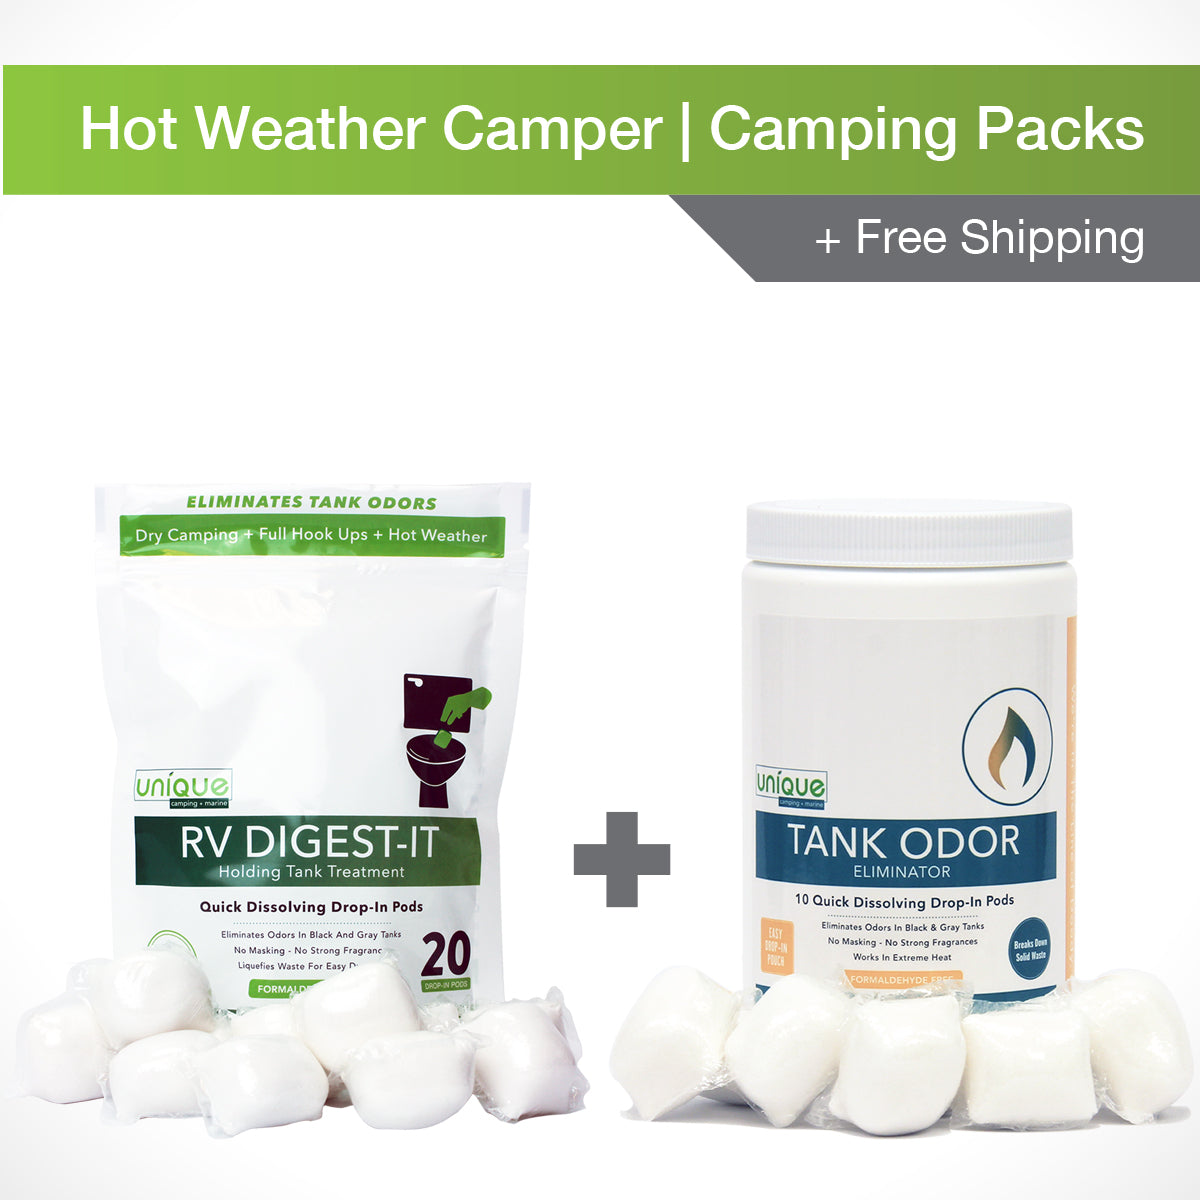 Our Hot Weather Camping Pack treats your holding tank in the hottest temperatures. Use RV Digest-It to break down waste and Tank Odor Eliminator to Eliminate tough odors in high heat! Unique Camping + Marine